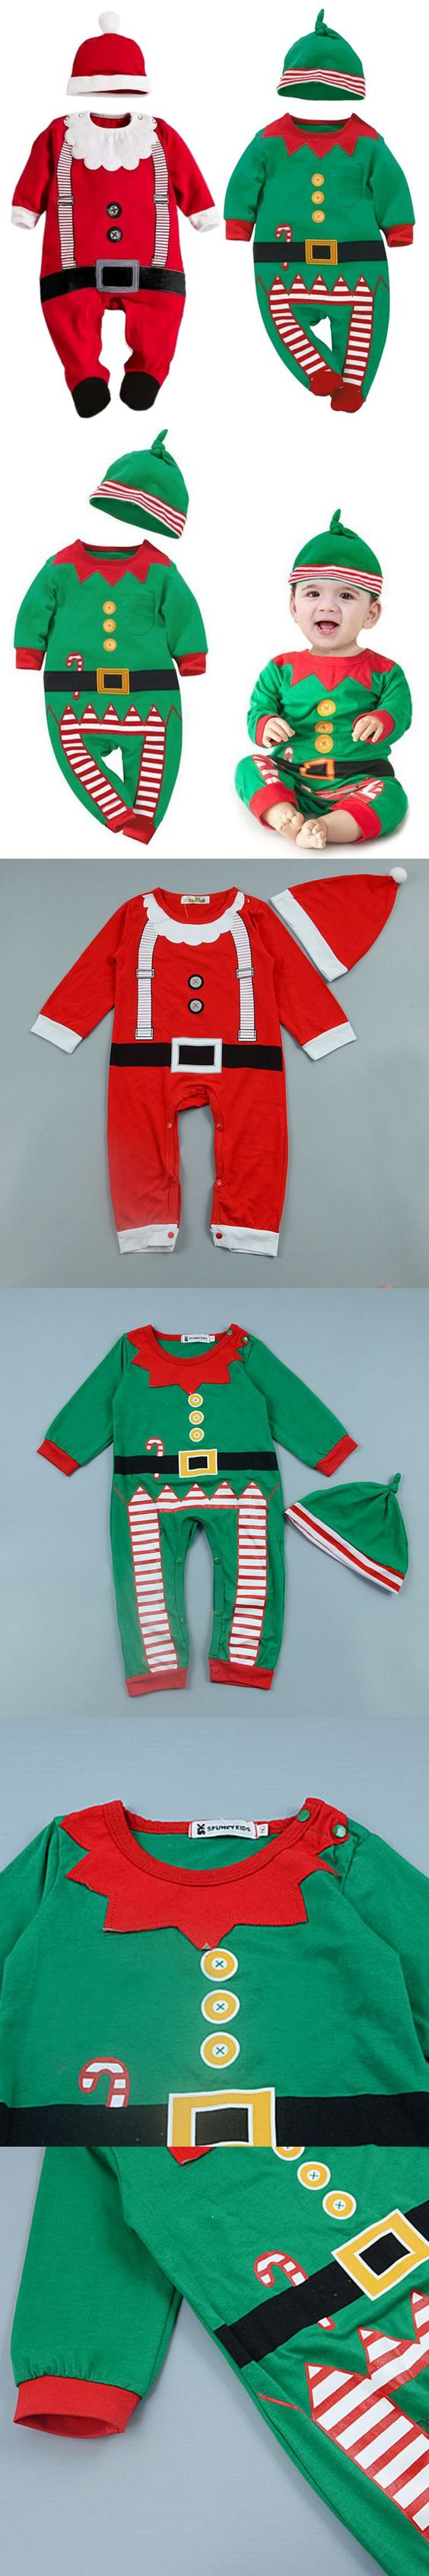 Christmas Baby Rompers Costume Kids Children Newborn Clothes Long Sleeve Spring Children Infant Clothing Set Top + Hat 2016 $6.54